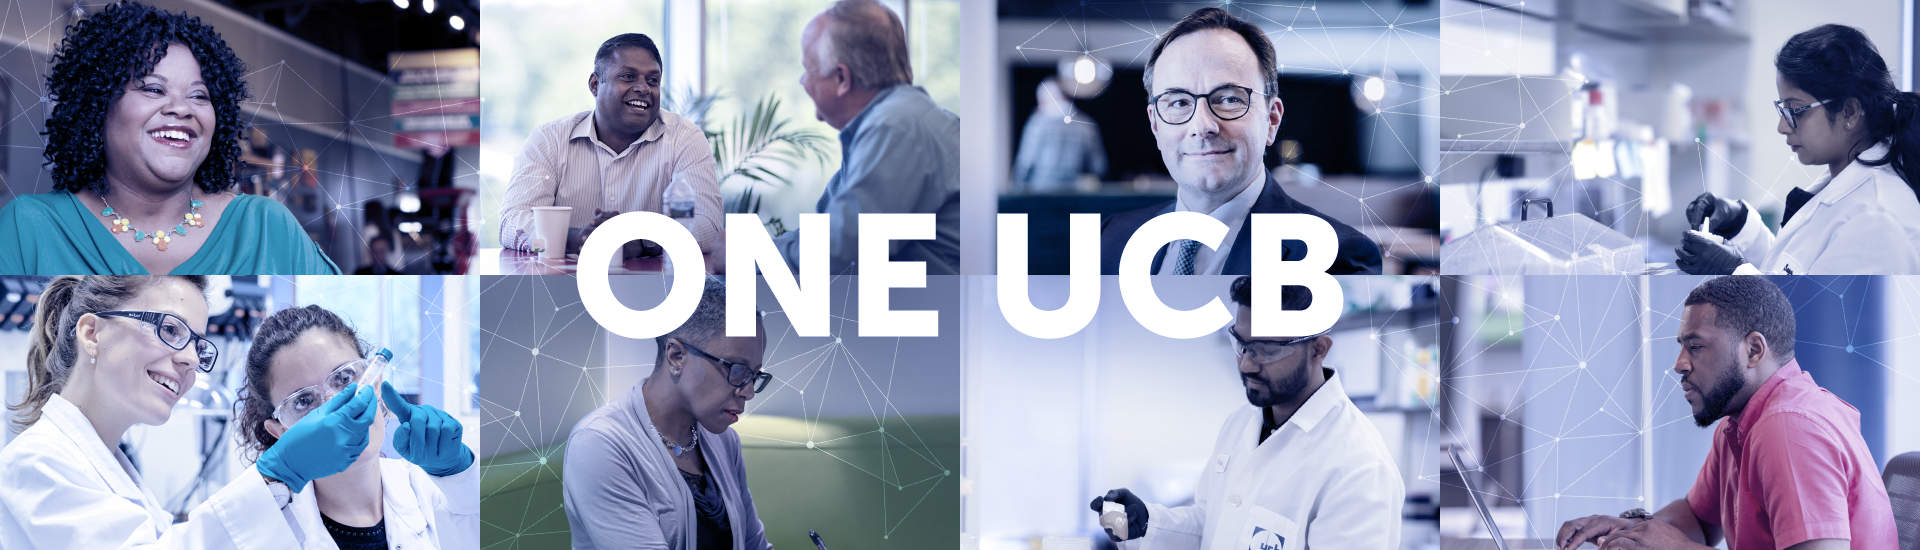 Collage of UCB researchers, patients, and employees with ONE UCB